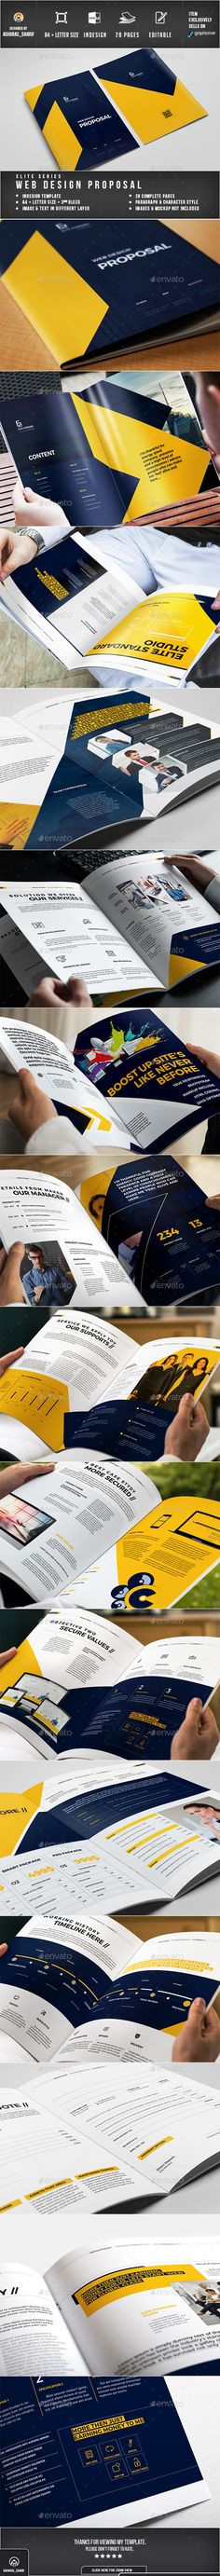 Proposal Template InDesign INDD. Download here: http://graphicriver.net/item/proposal/15789831?ref=ksioks